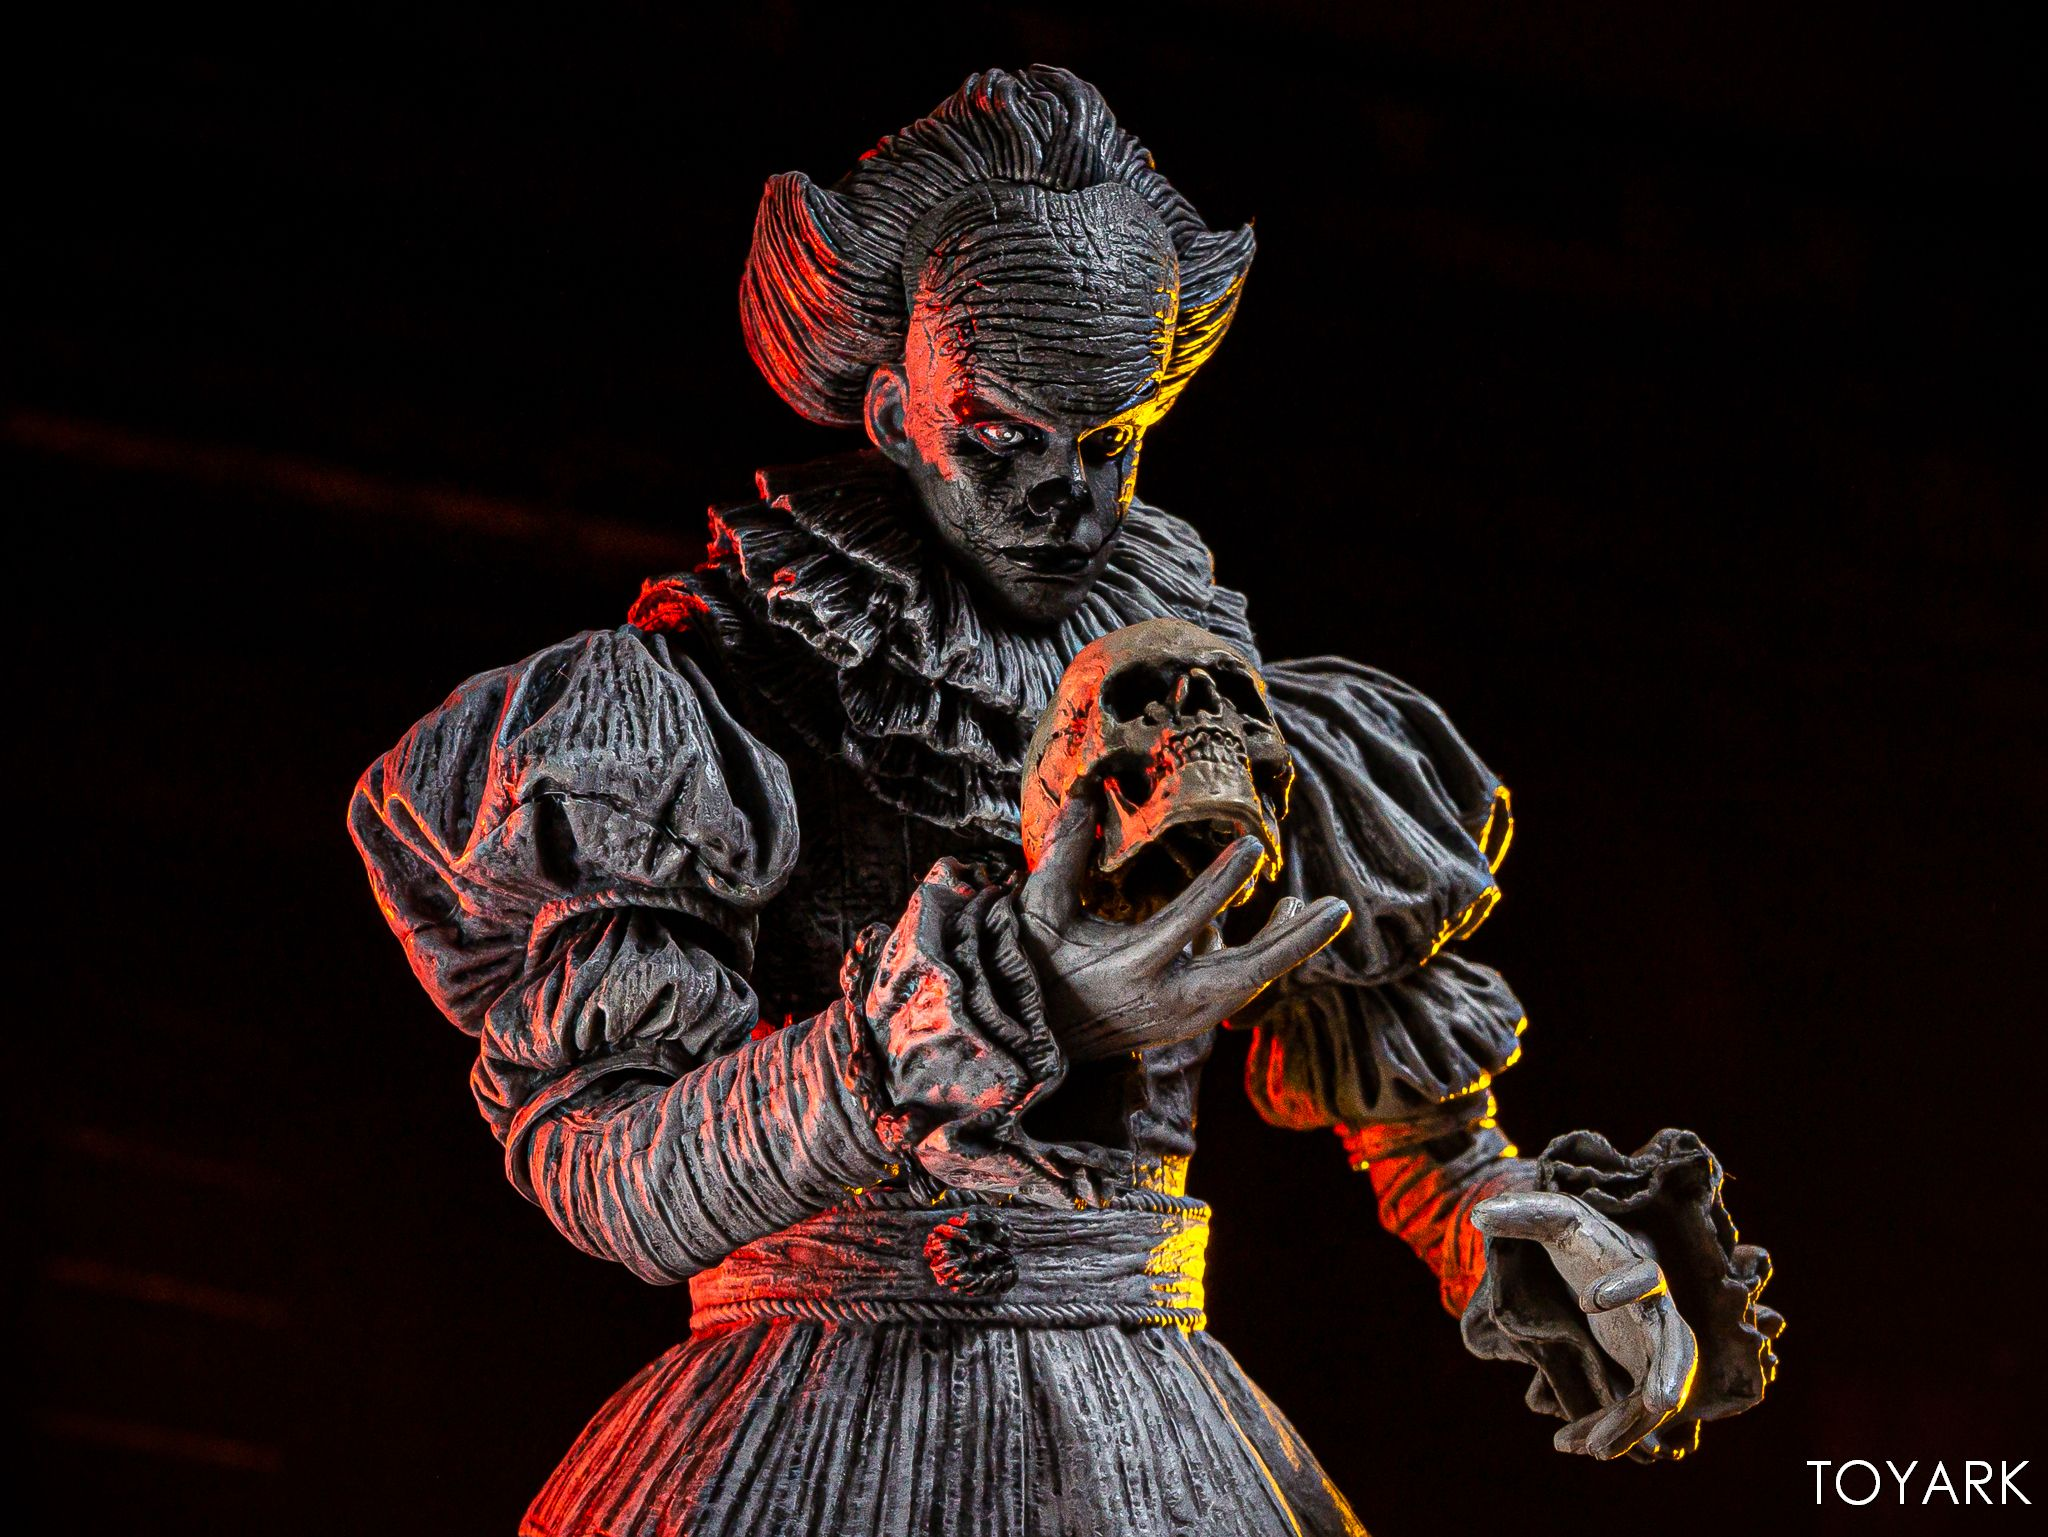 https://news.toyark.com/wp-content/uploads/sites/4/2019/07/SDCC-2019-Etched-Pennywise-NECA-023.jpg